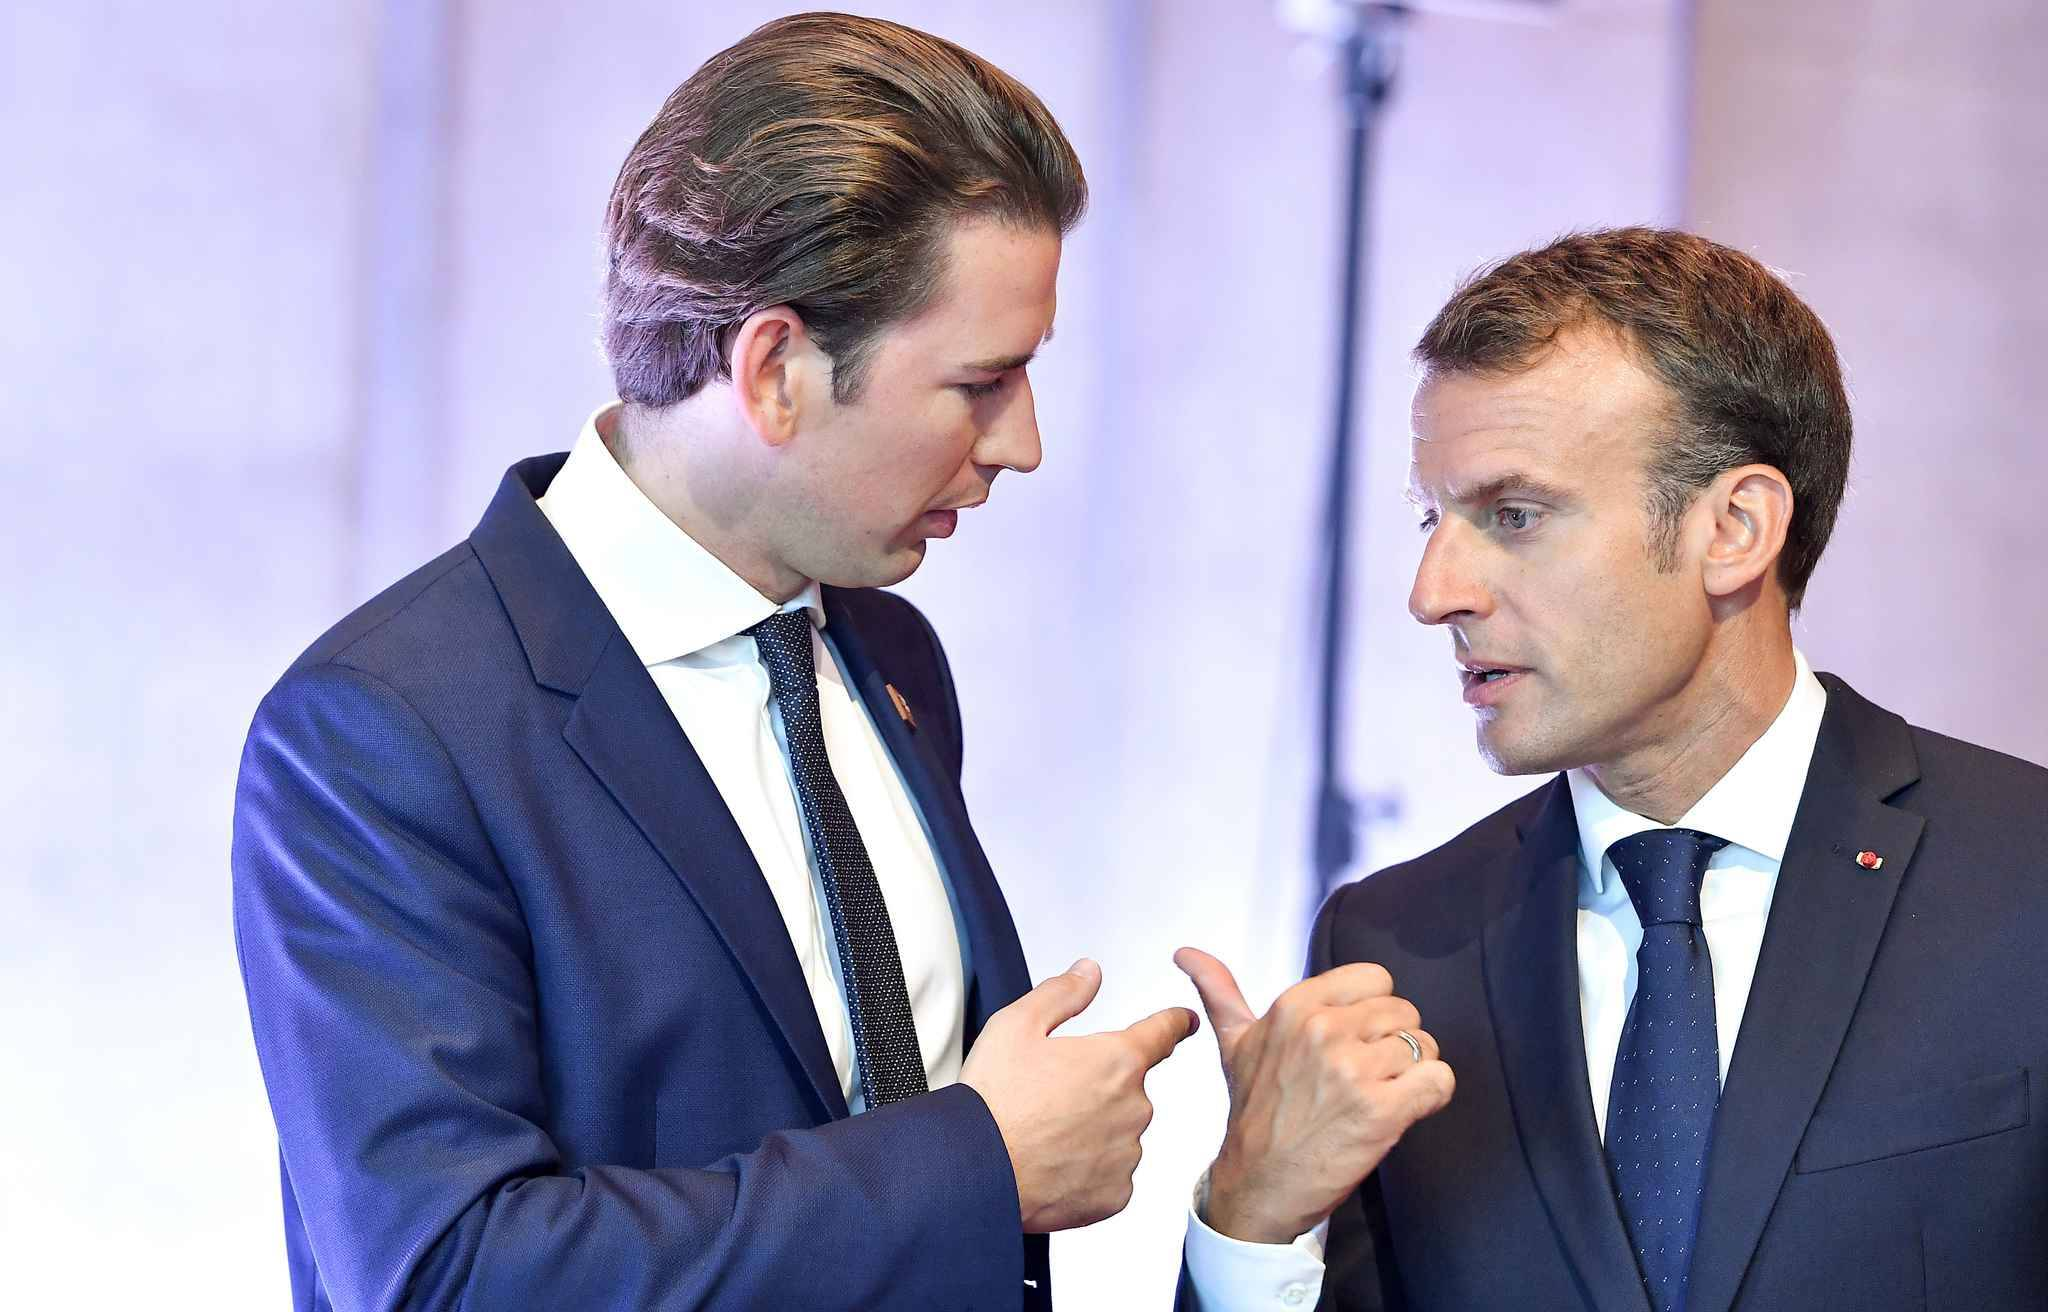 Austria's Chancellor Sebastian Kurz (L) and France's President Emmanuel Macron confer prior to the start of a plenary session at the Mozarteum University during the EU Informal Summit of Heads of State or Government in Salzburg, Austria, on September 20, 2018.